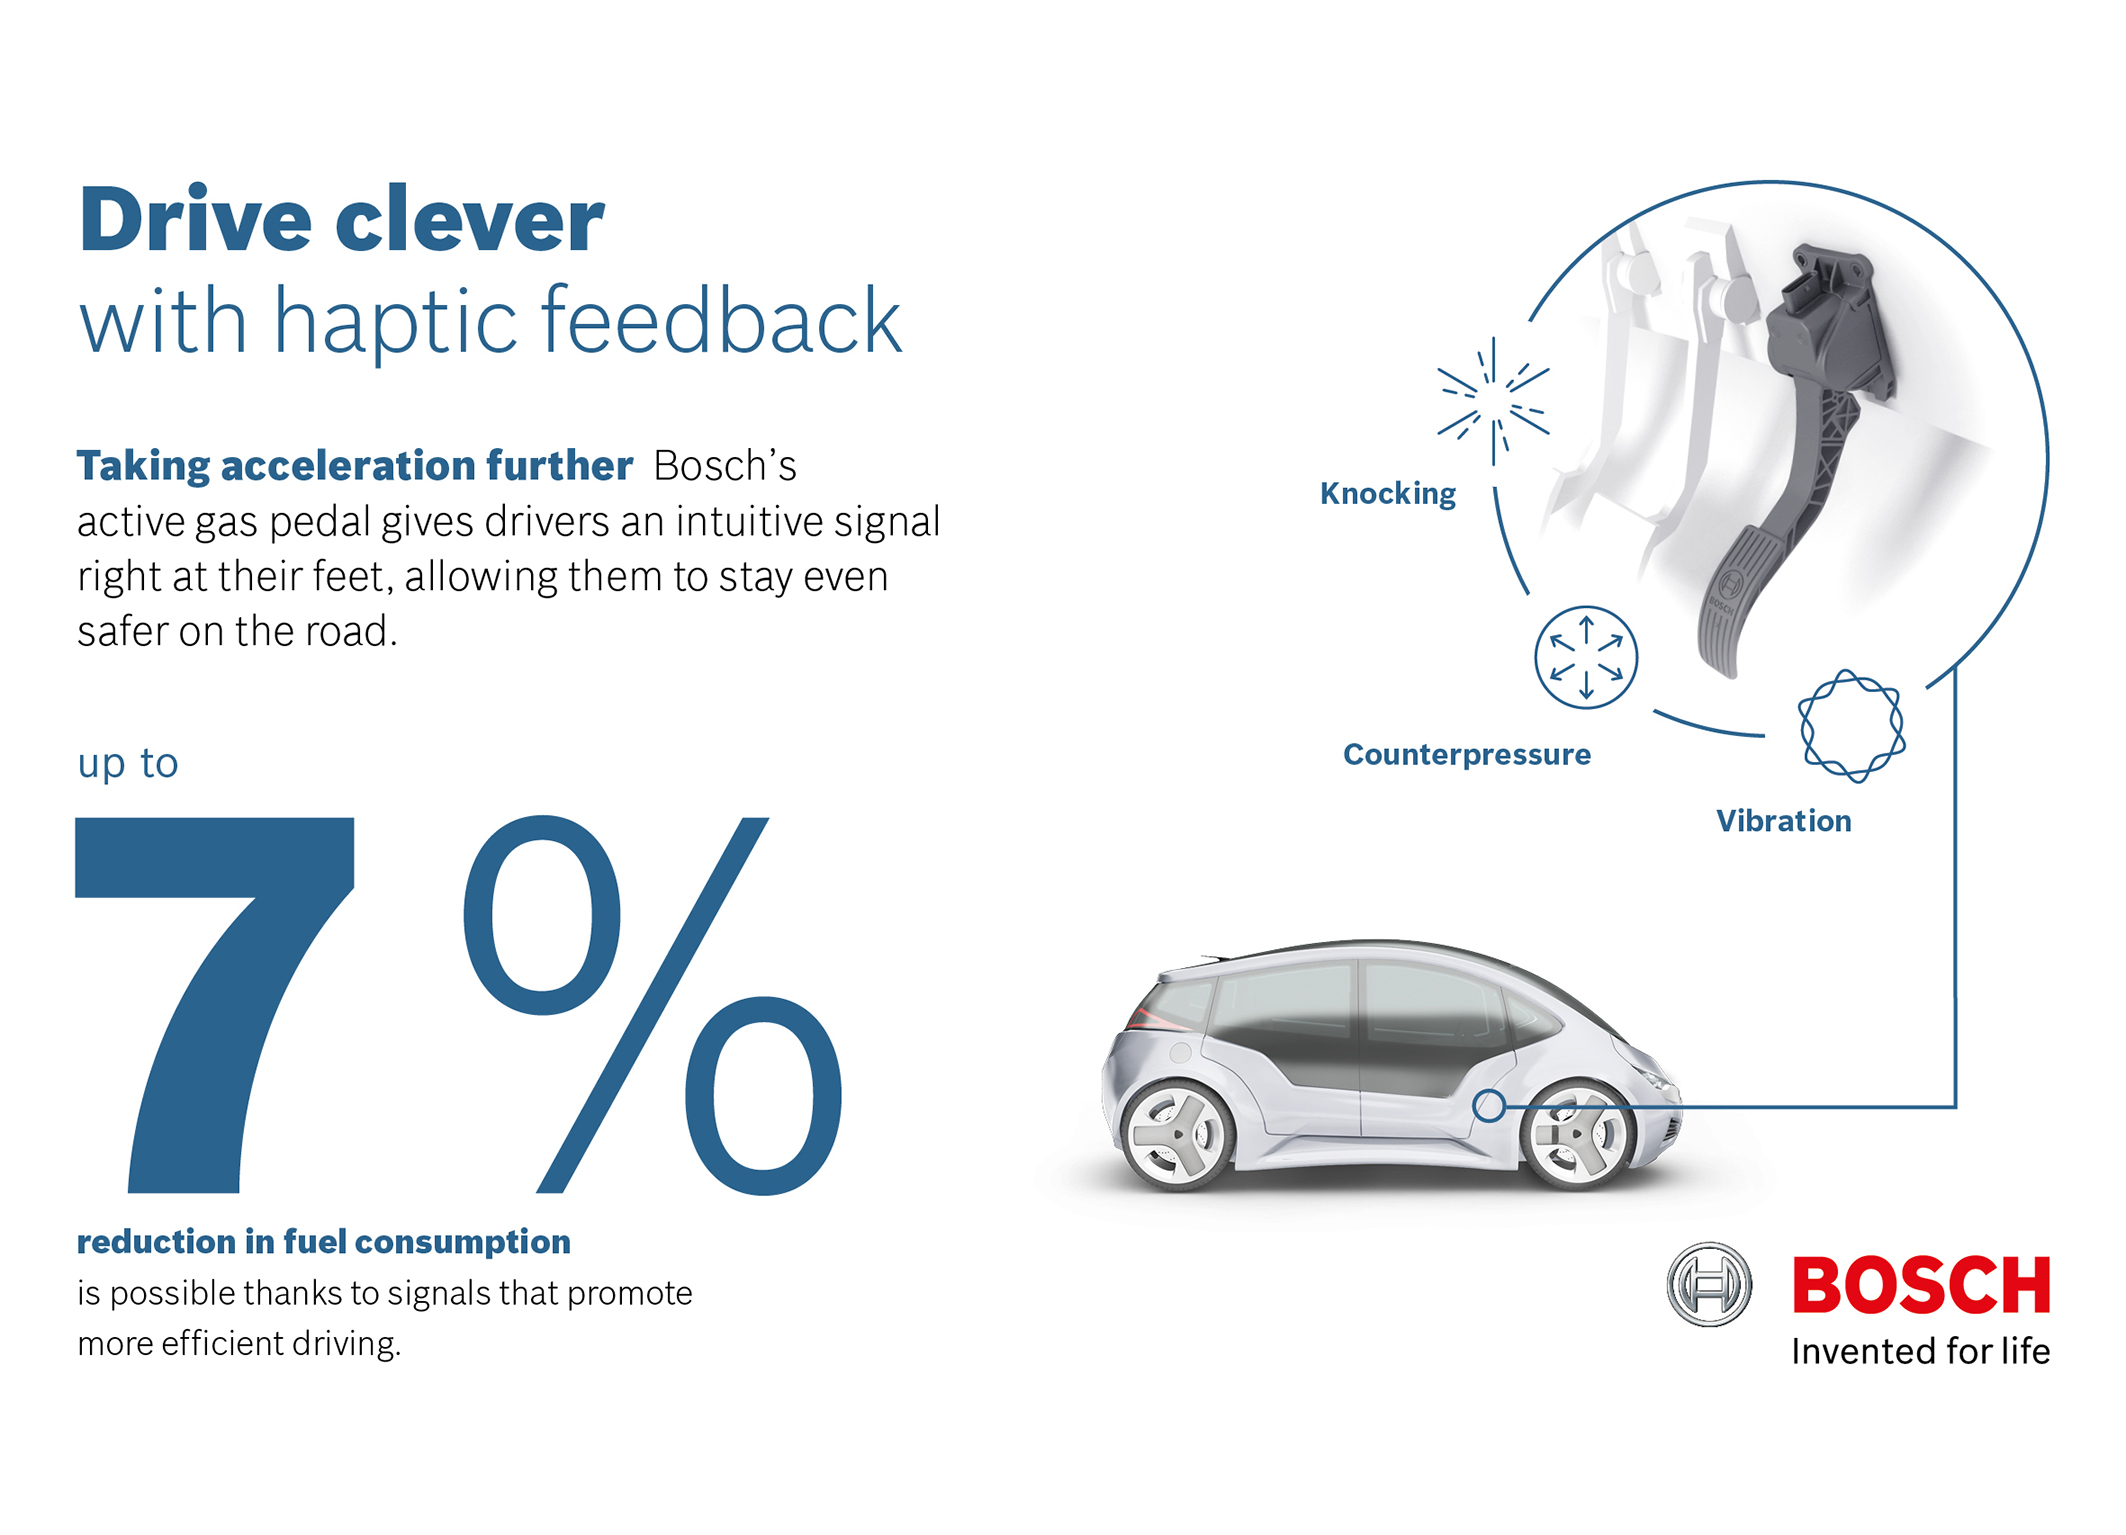 Bosch's Smart Gas Pedal Lowers Fuel Consumption